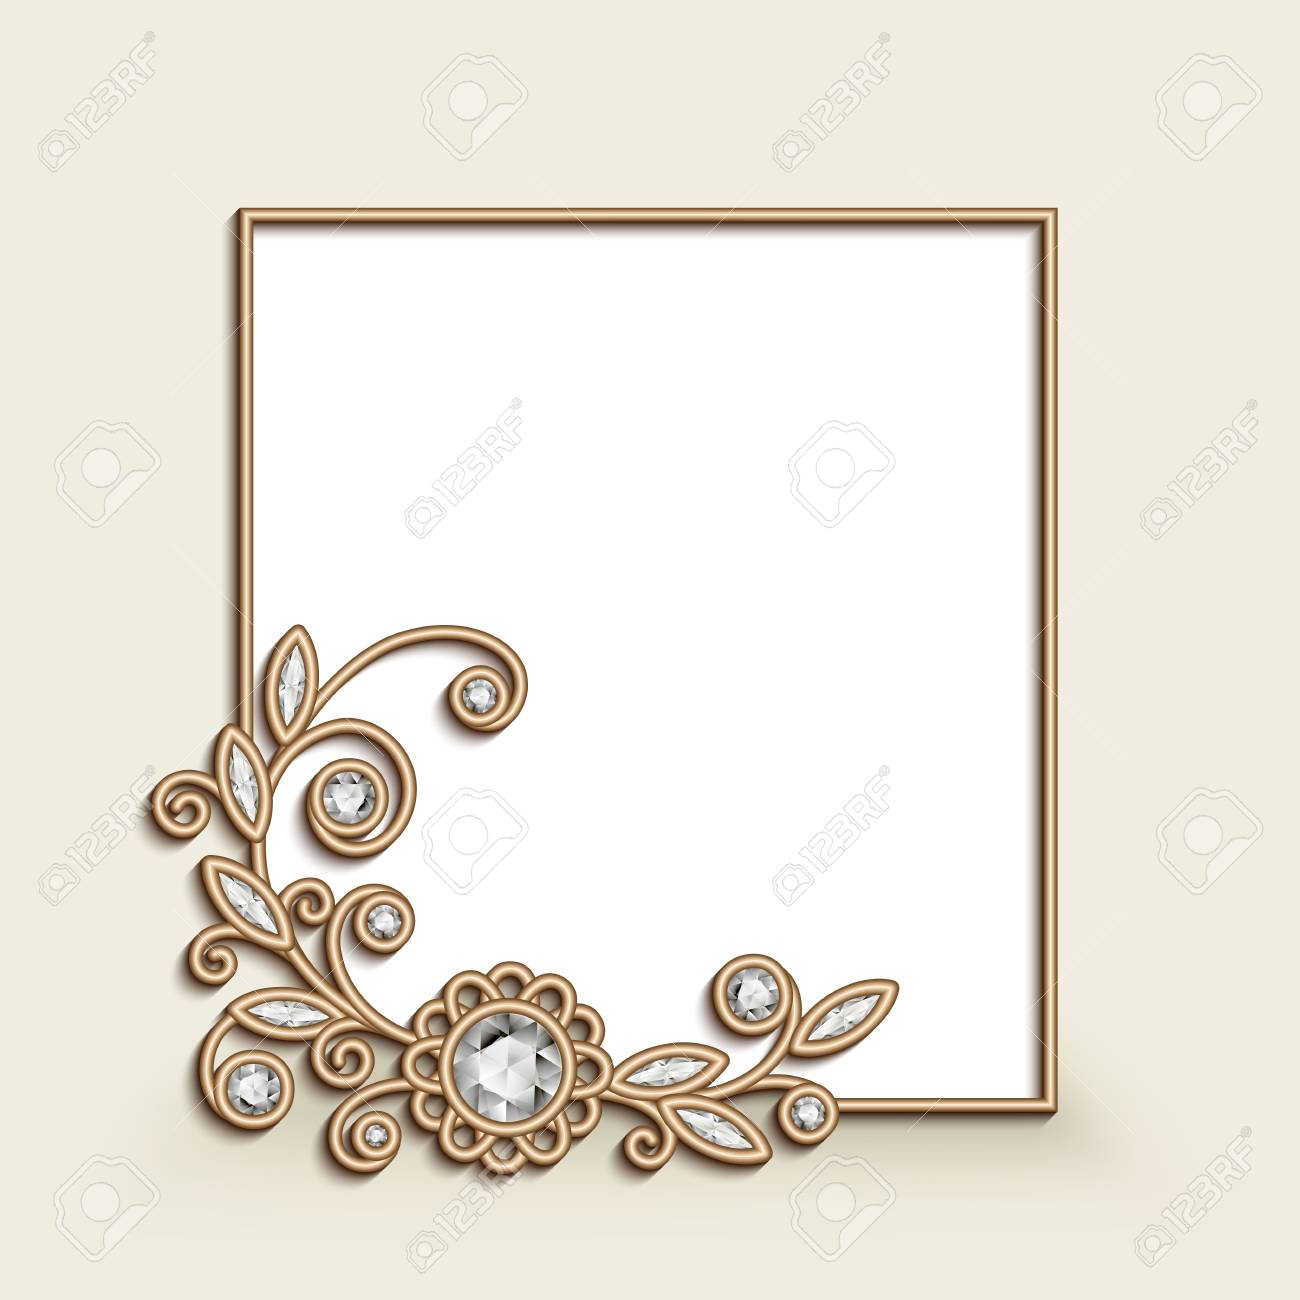 Vintage Photo Frame With Gold Corner Decoration Floral Jewellery